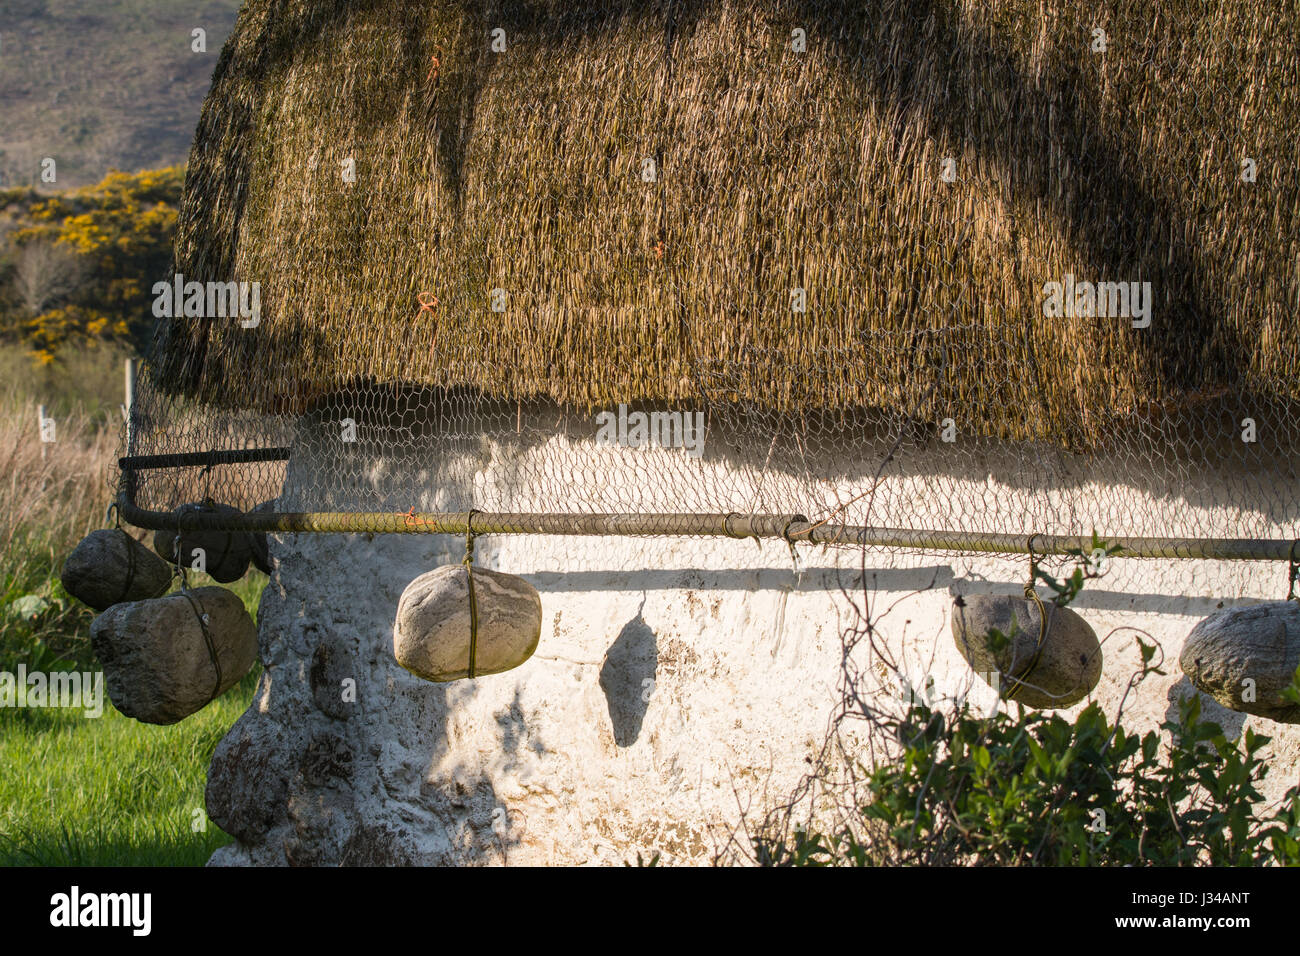 Thatched cottage - detail of last intact traditional Lochalsh cottage, Lower Ardelve, Lochalsh, Highland, Scotland Stock Photo